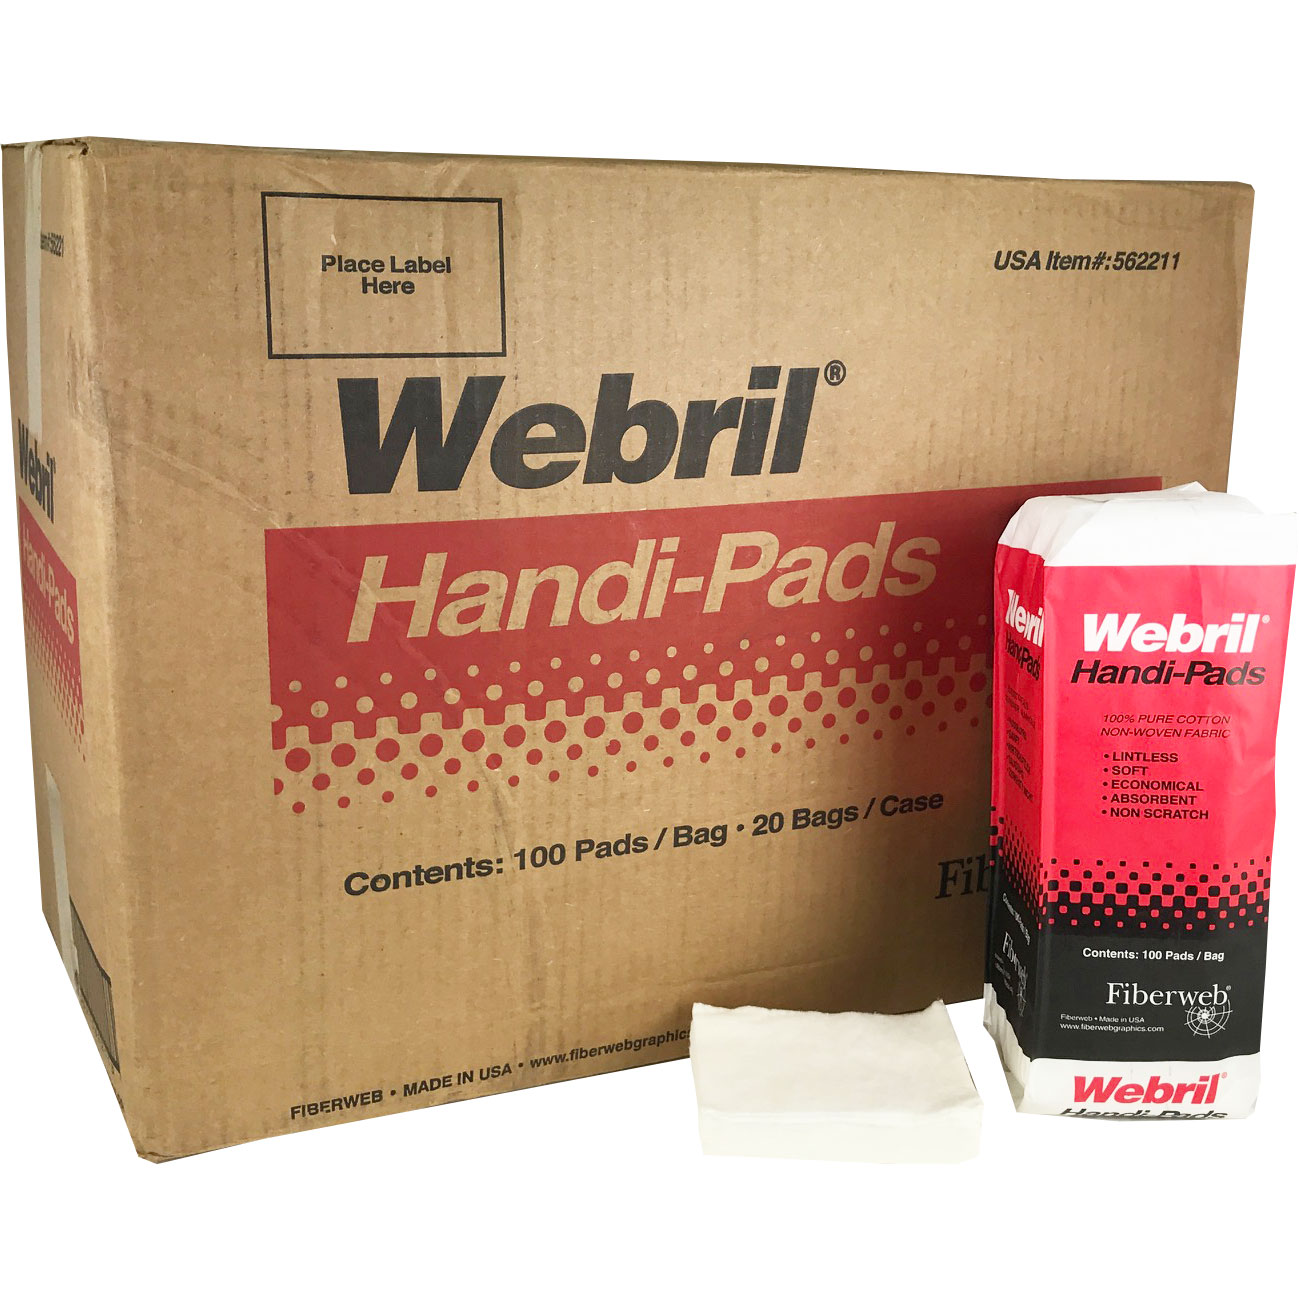 Webril Cotton Handi-Pads (20 Packs)